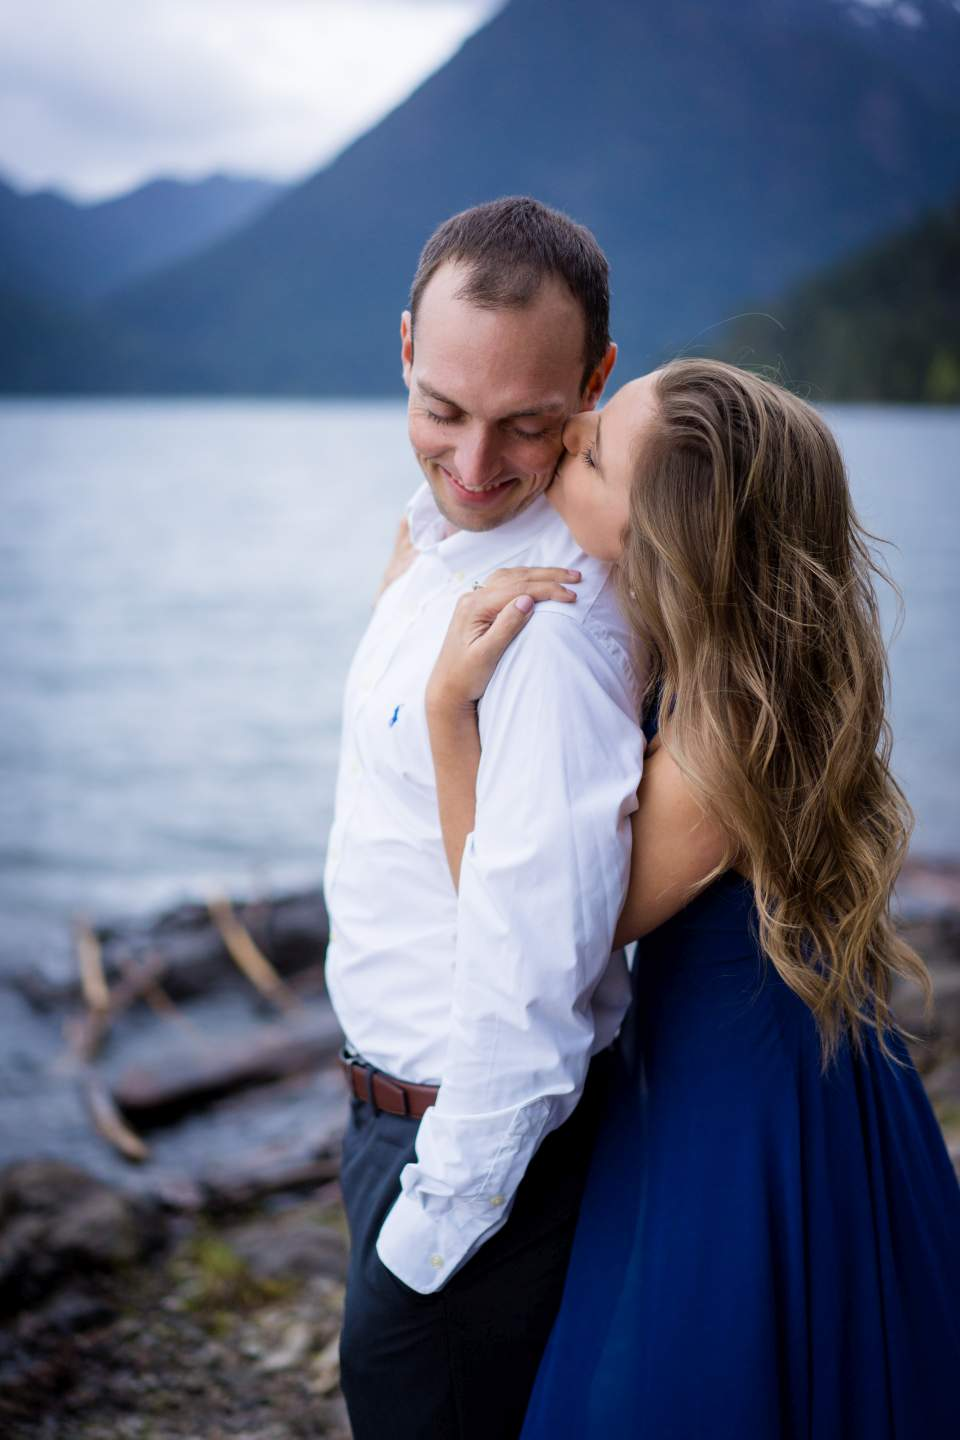 outdoorsy engament photos at lake cushman